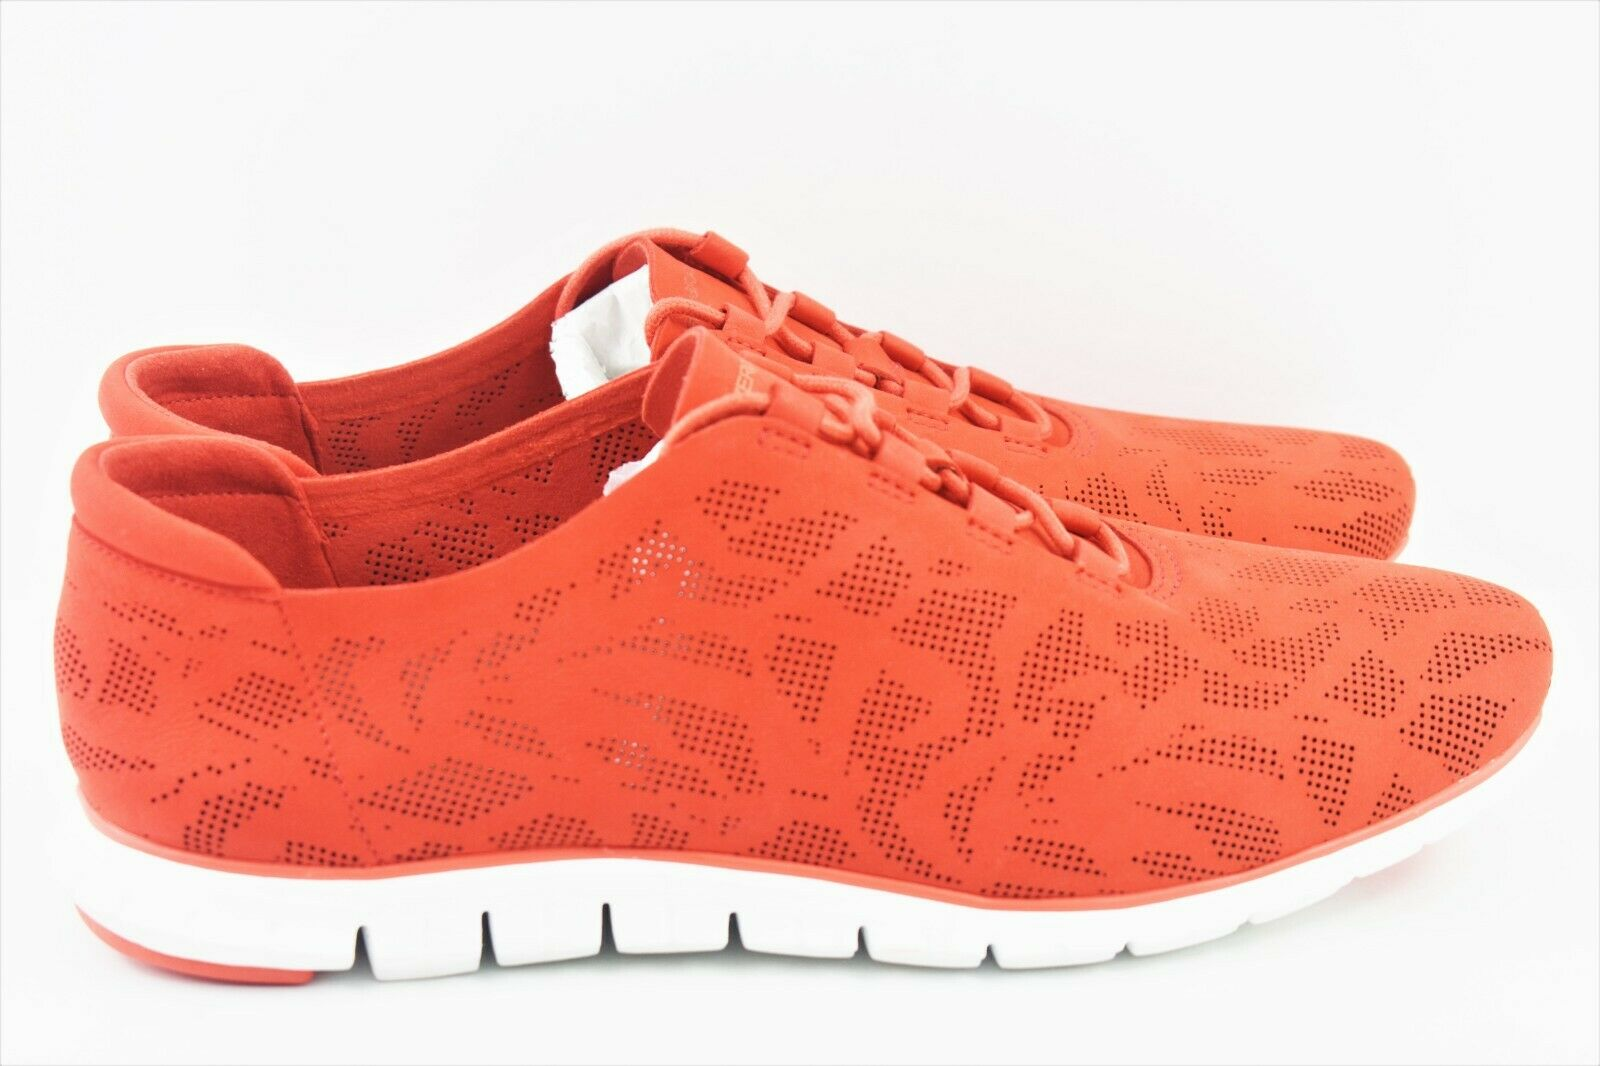 Cole Haan Zerogrand Womens Size 11 Perforated Trainer shoes Nubuck Red W04685